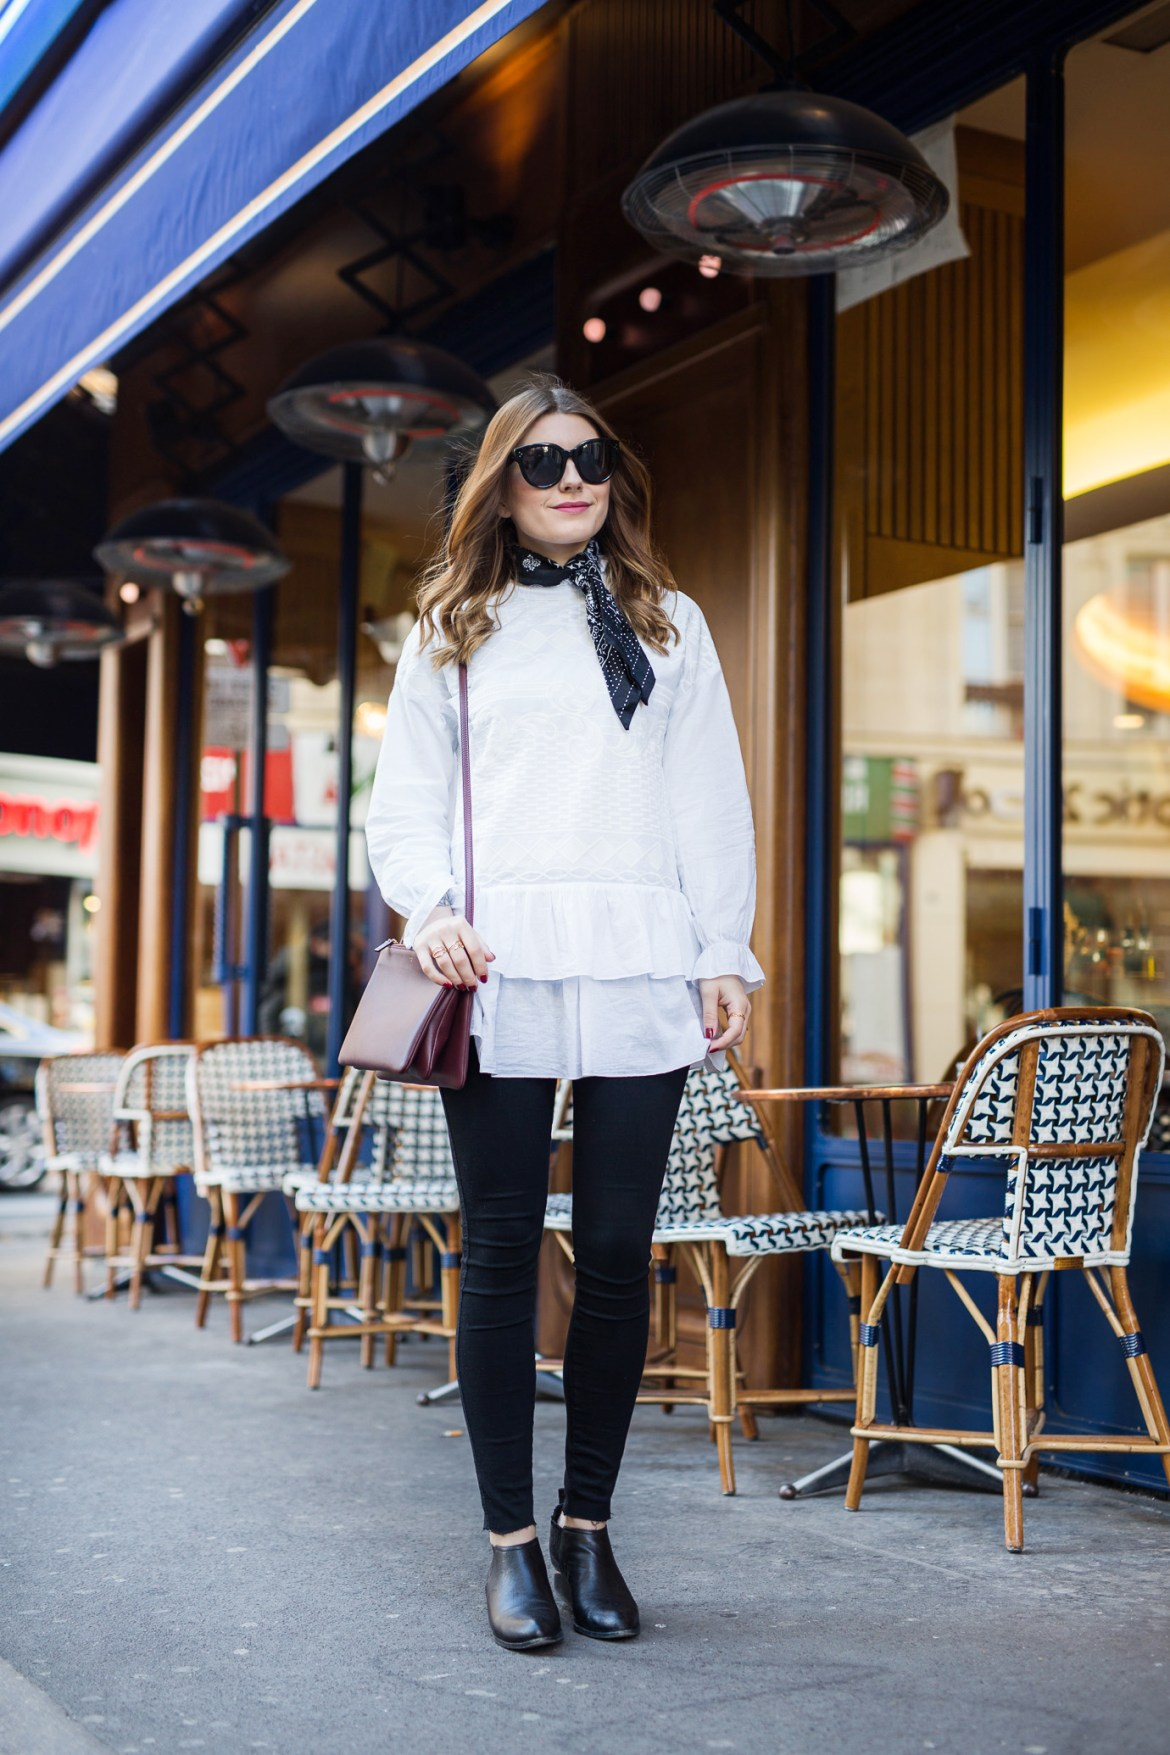 From_Paris_With_Love_Outfit_1